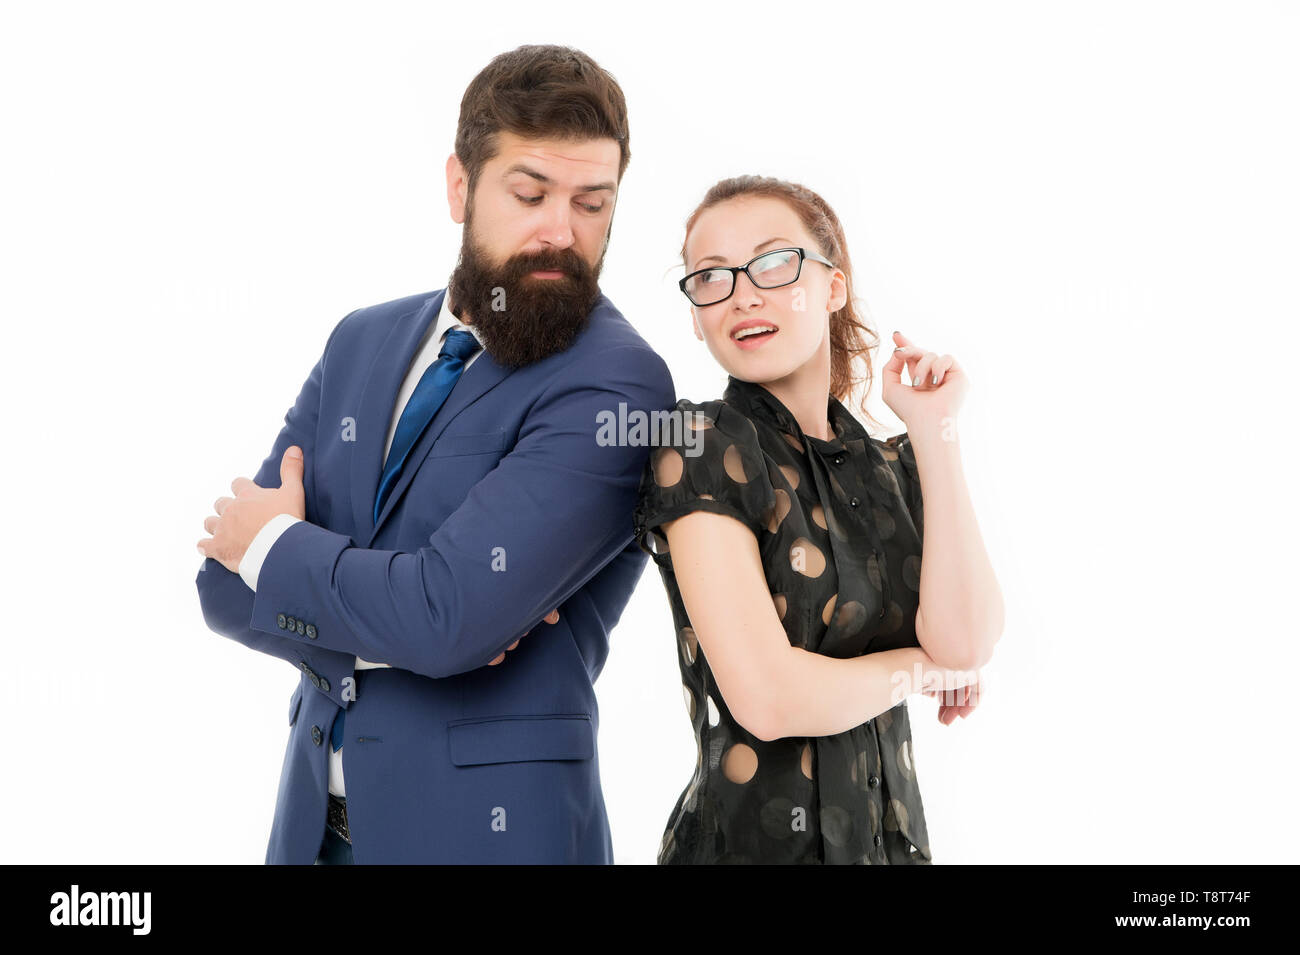 HR manager. Office job lifestyle. Figure out type of position you would really enjoy. Colleagues looking for new job. Man and woman compete for job position. Labor market competition. Job interview. - Stock Image